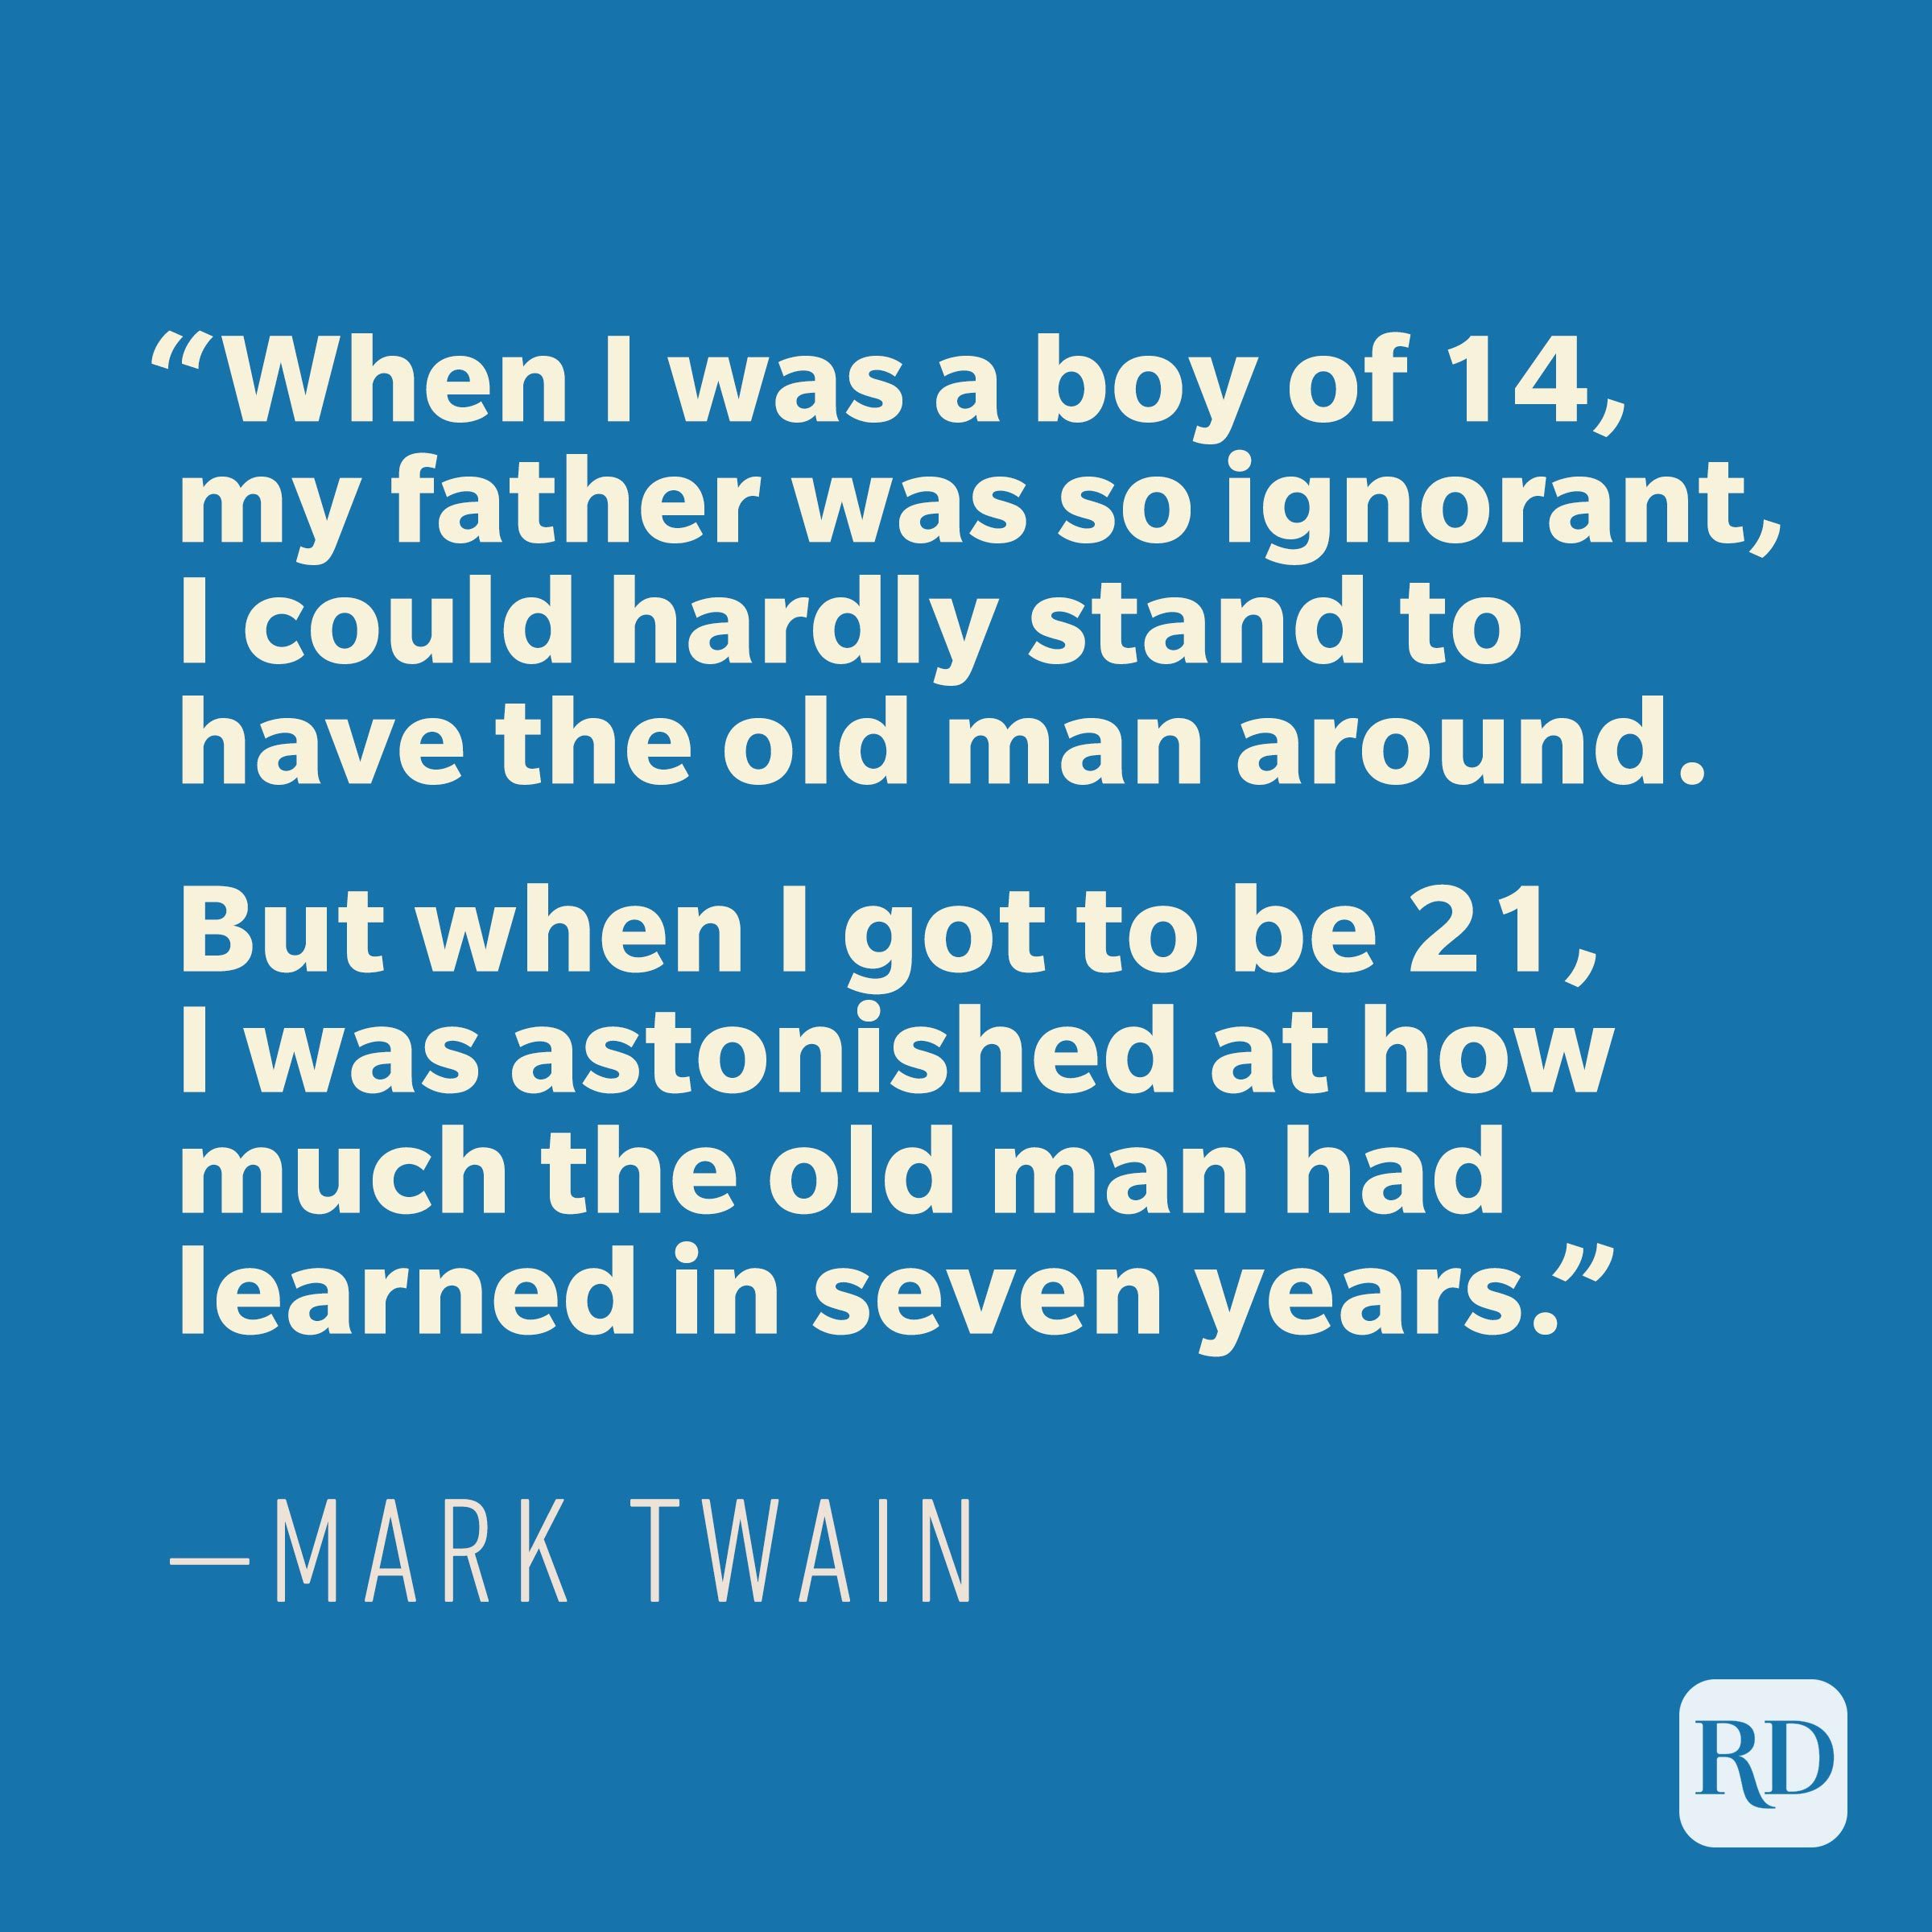 """When I was a boy of 14, my father was so ignorant, I could hardly stand to have the old man around. But when I got to be 21, I was astonished at how much the old man had learned in seven years."" —MARK TWAIN"